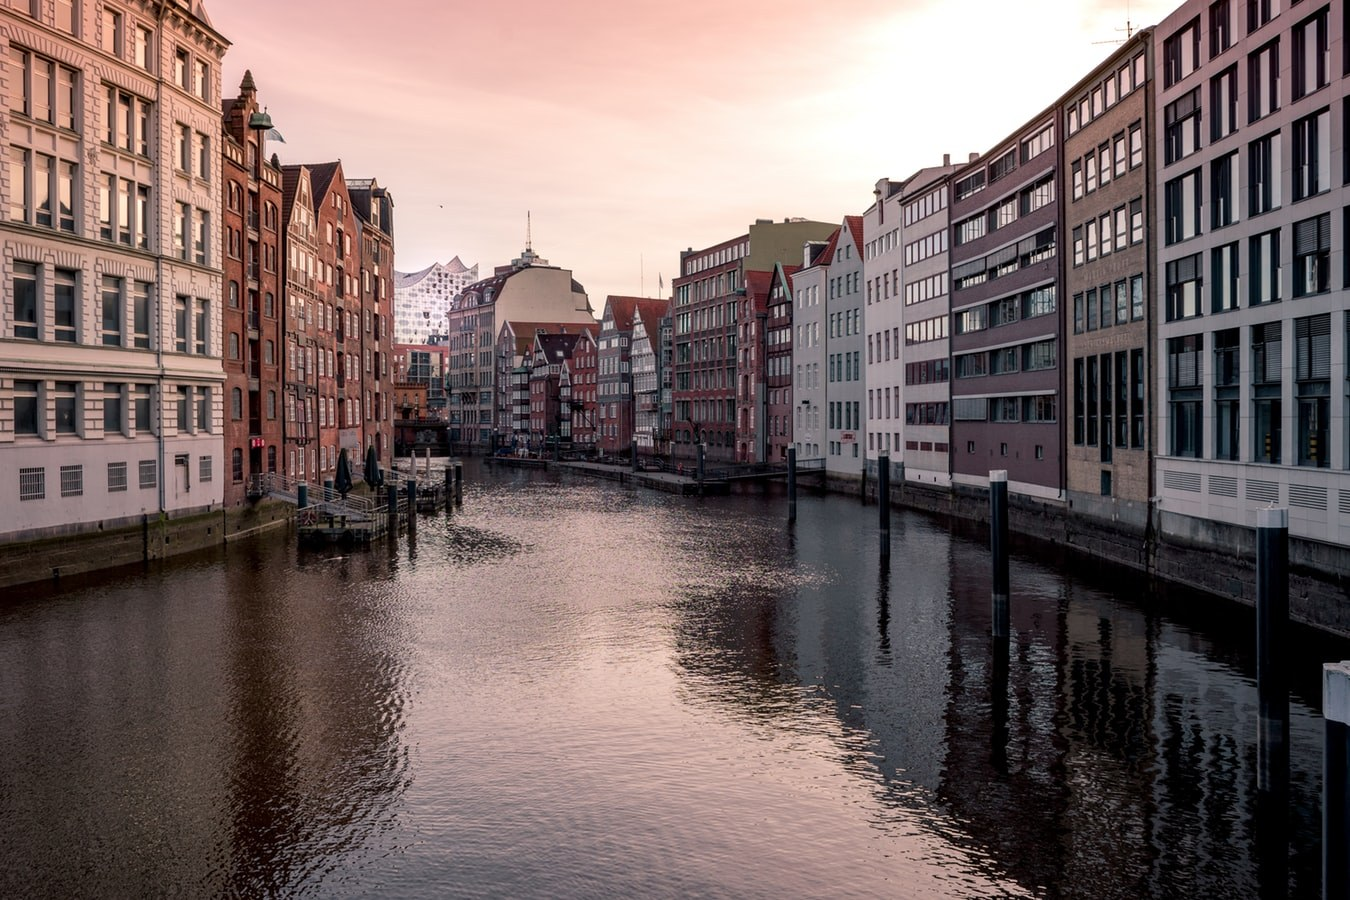 HAMBURG - THE NORTHERN TRAVEL DESTINATION OF GERMANY